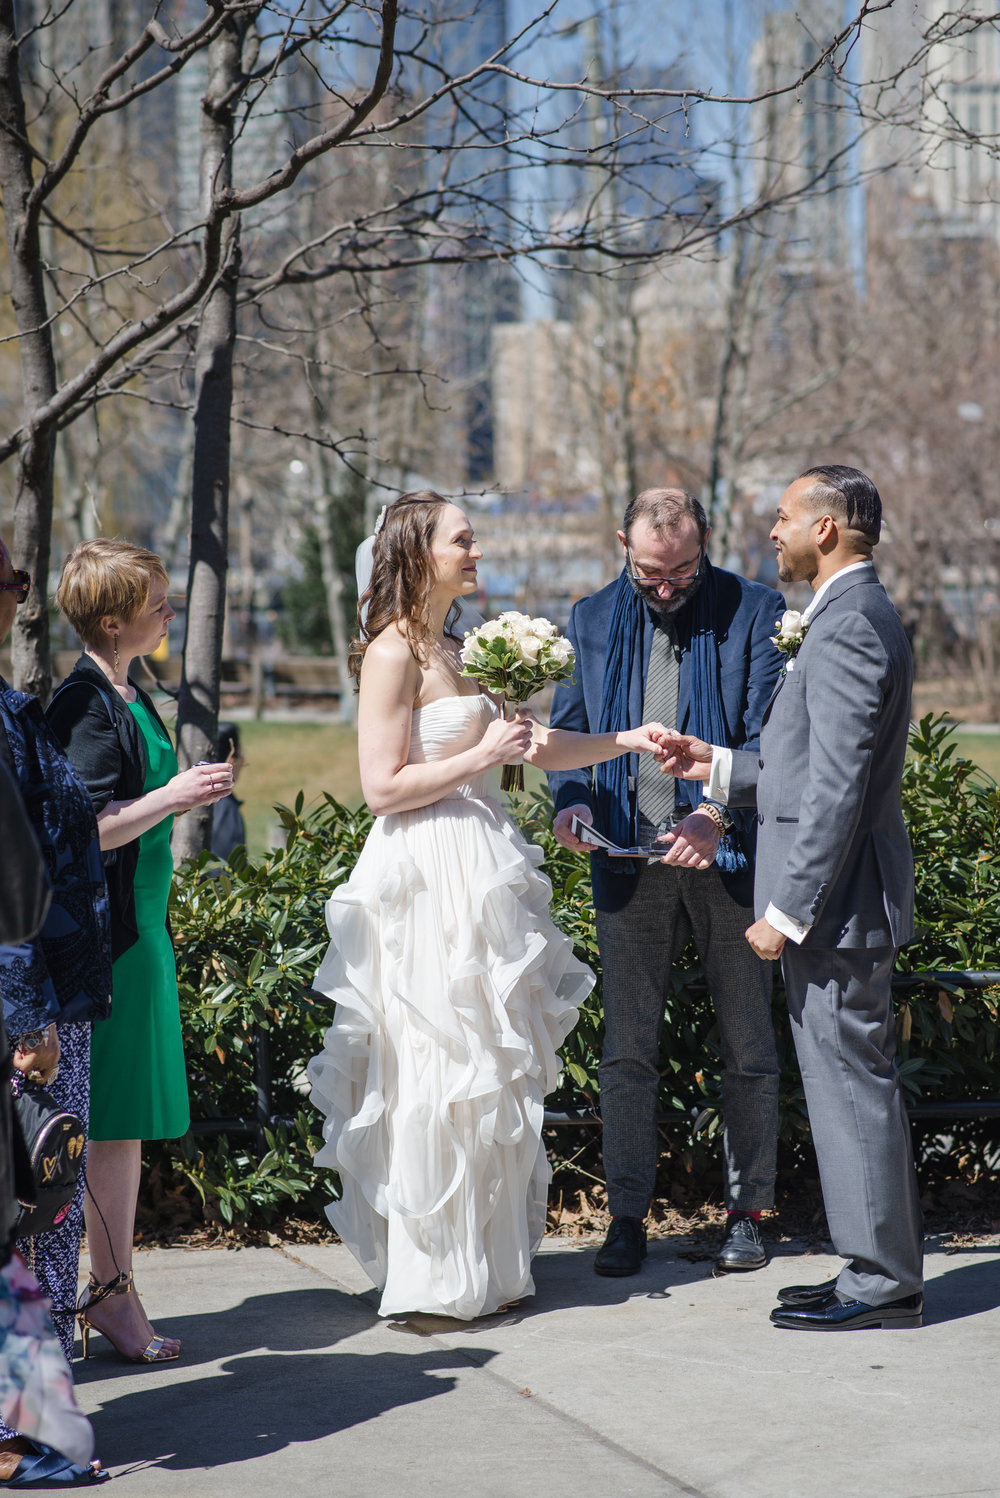 Brooklyn Bridge Park Wedding 4.jpg